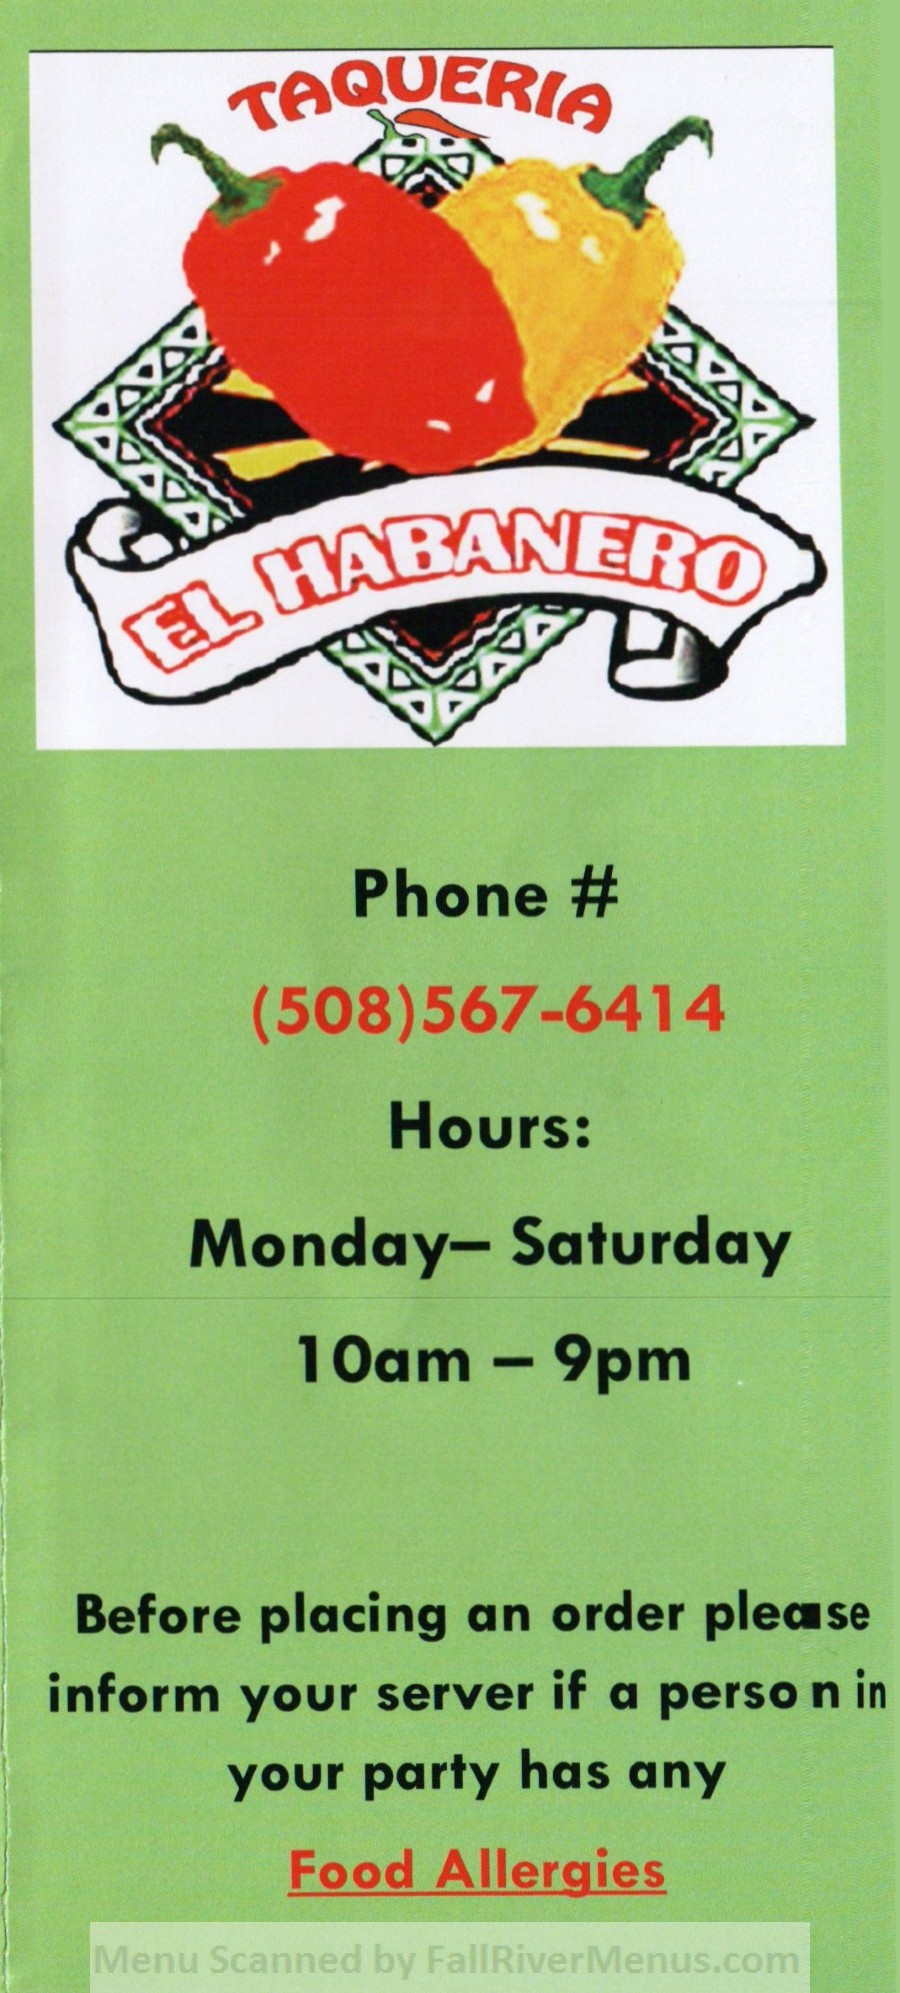 Taqueria El Habanero Fall River Scanned Menu